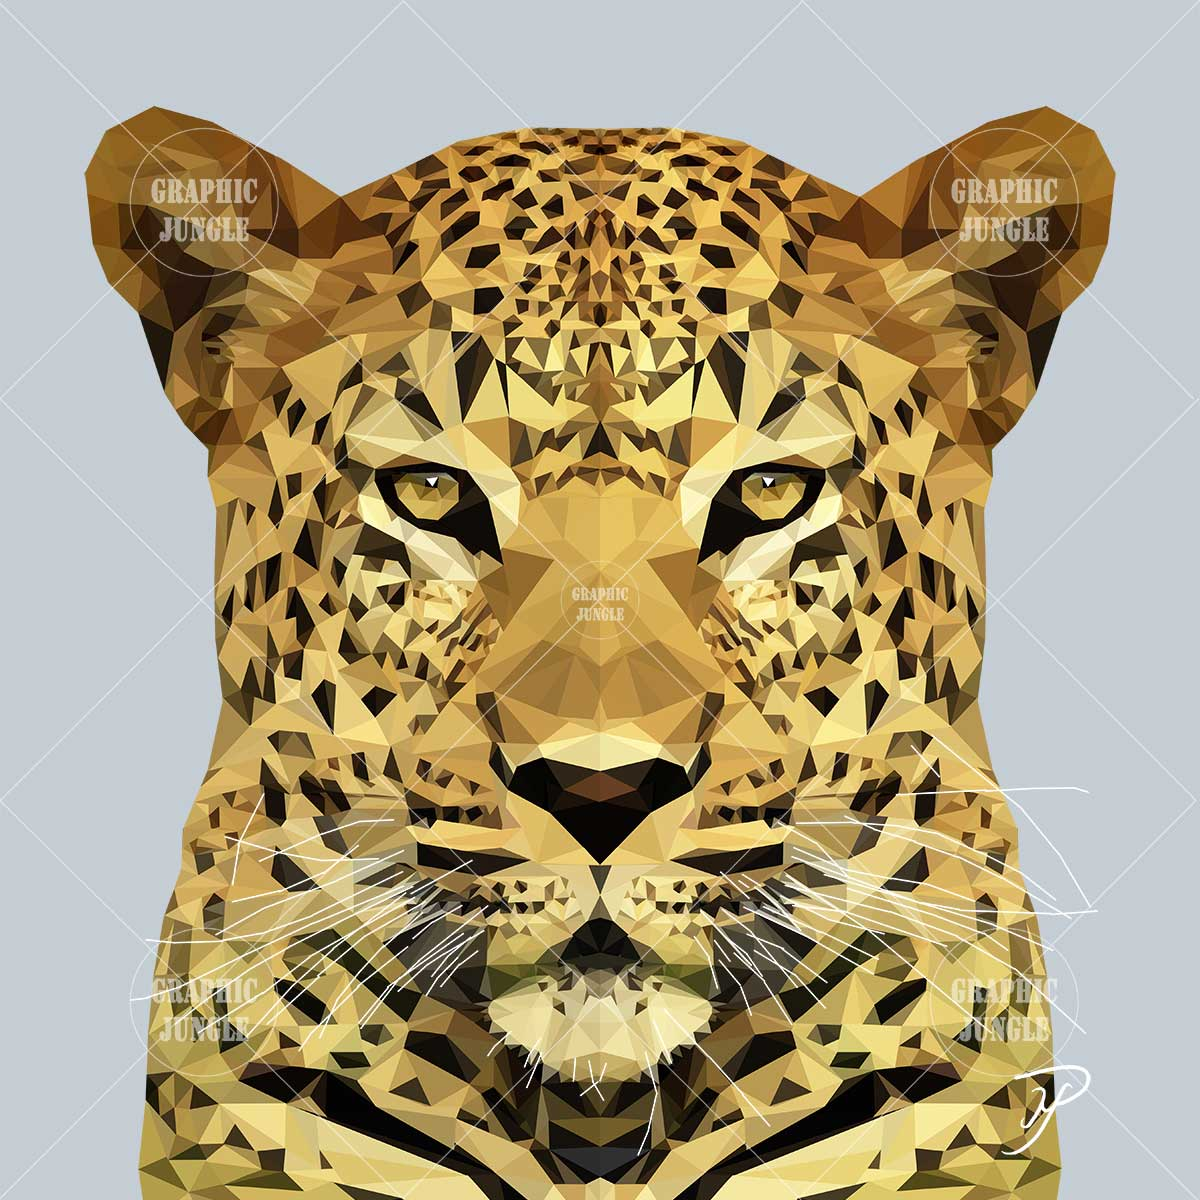 02 LEOPARD - Graphic Jungle